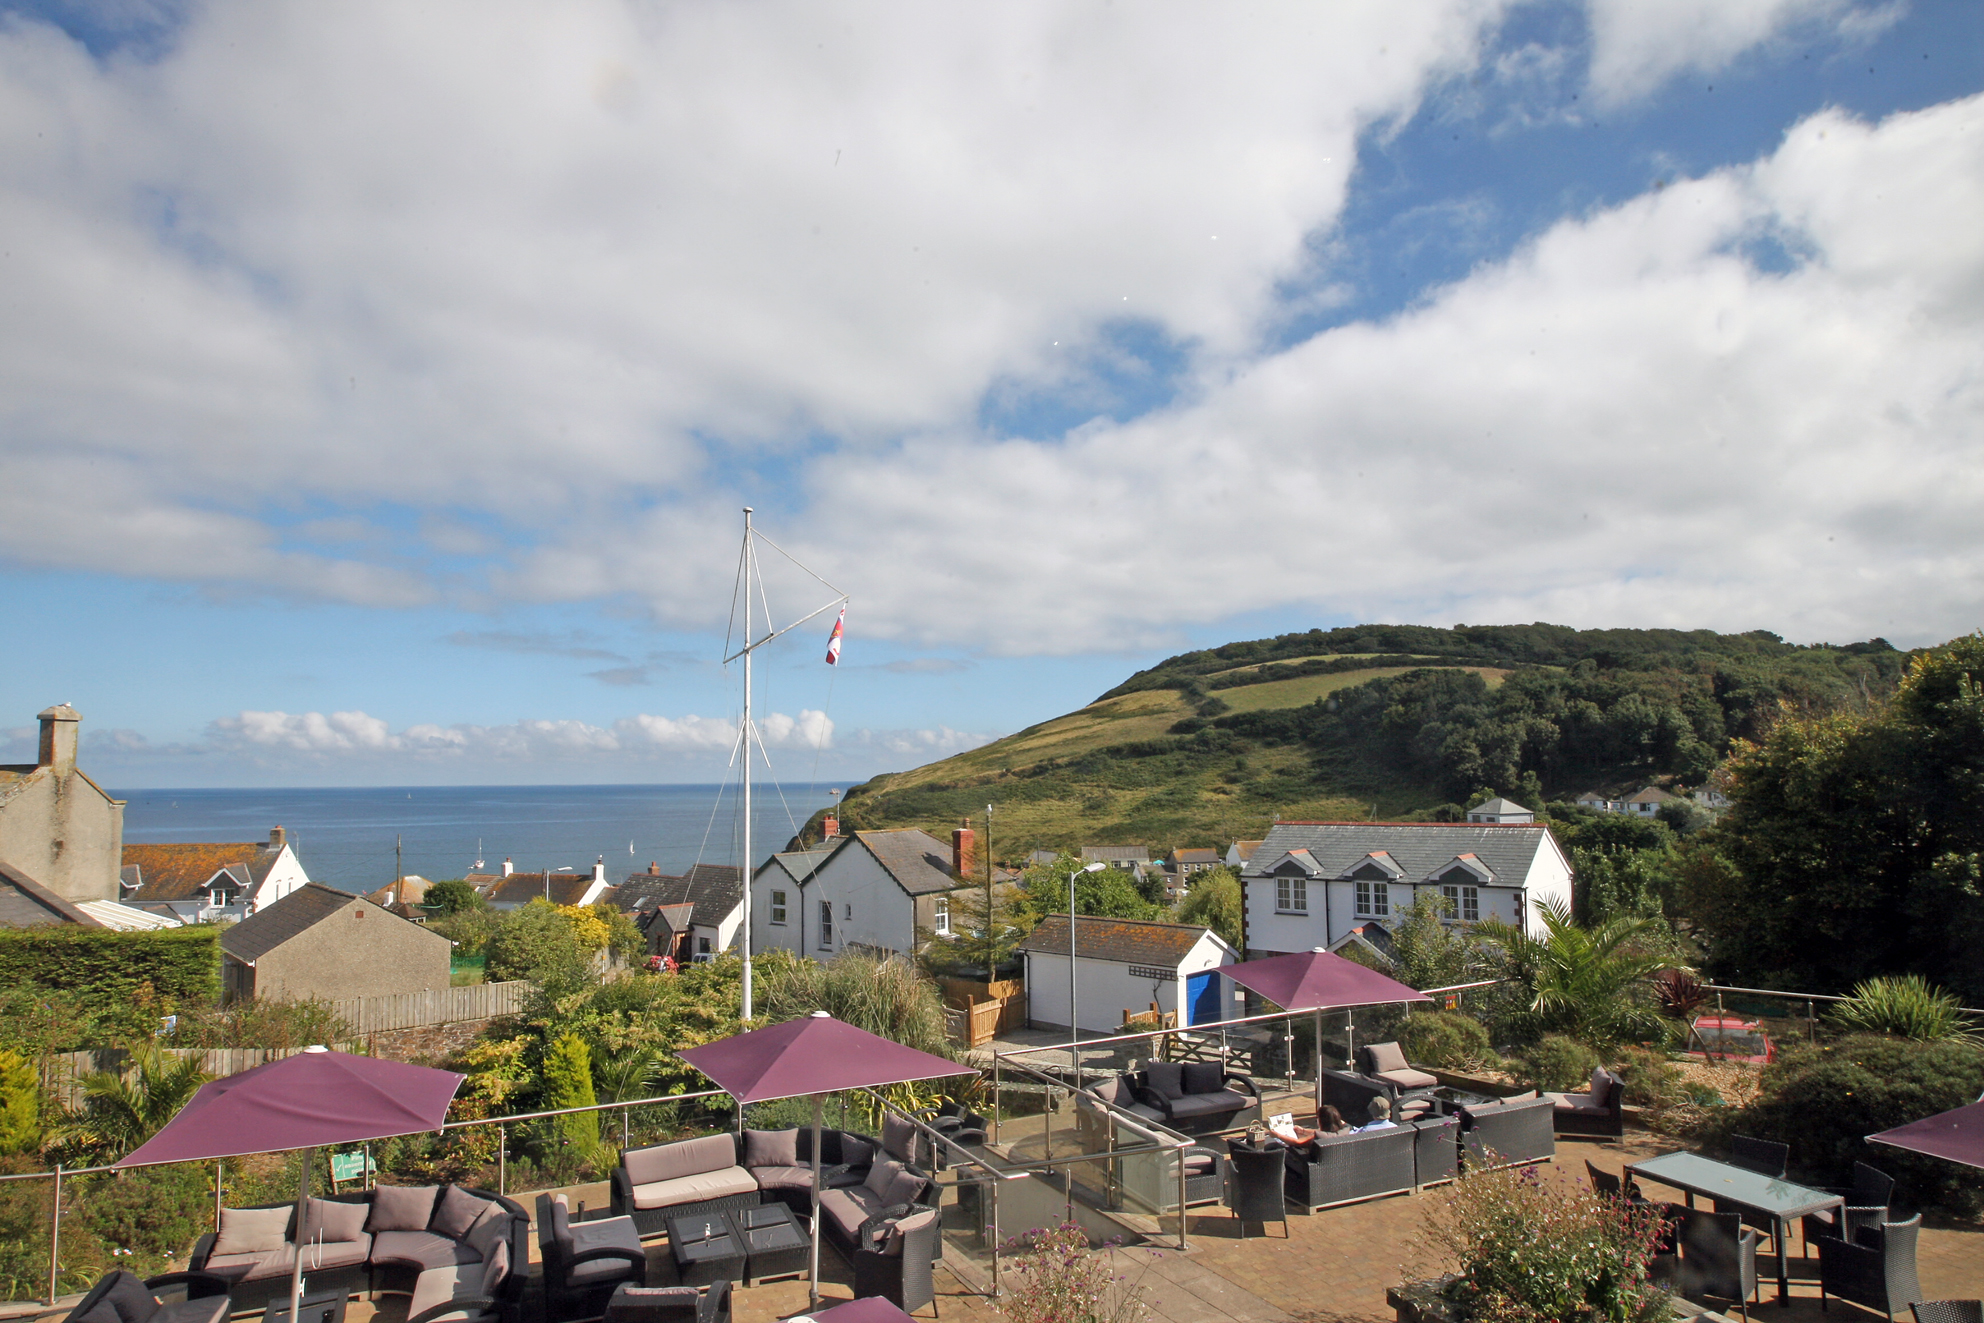 LawnrocRm7d 30/08/2016 The Llawnroc Hotel. Room 7, a double room with sea views over the hotel terrace, to the hilltops that lead to the SouthWest Coastal Path.